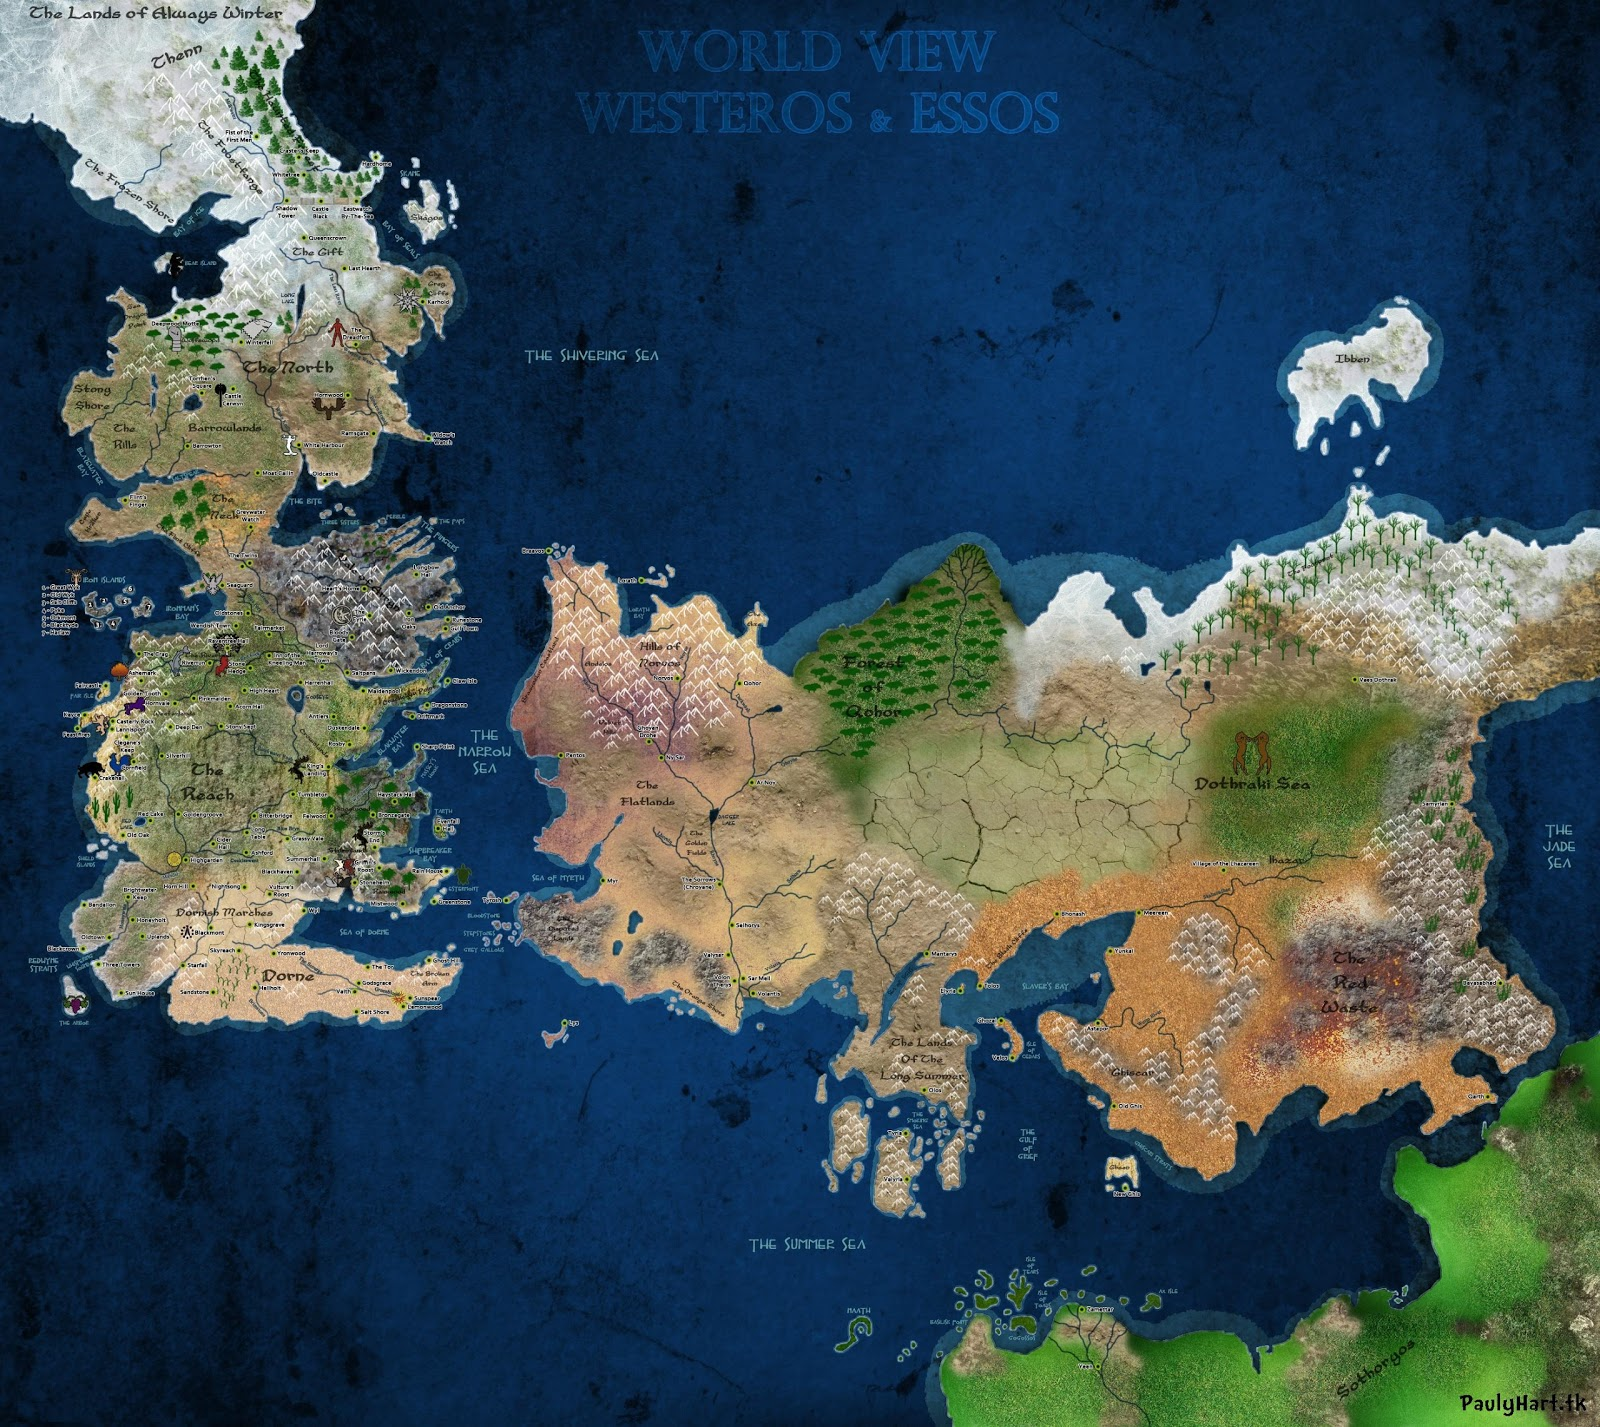 Exceptional image with free printable map of westeros